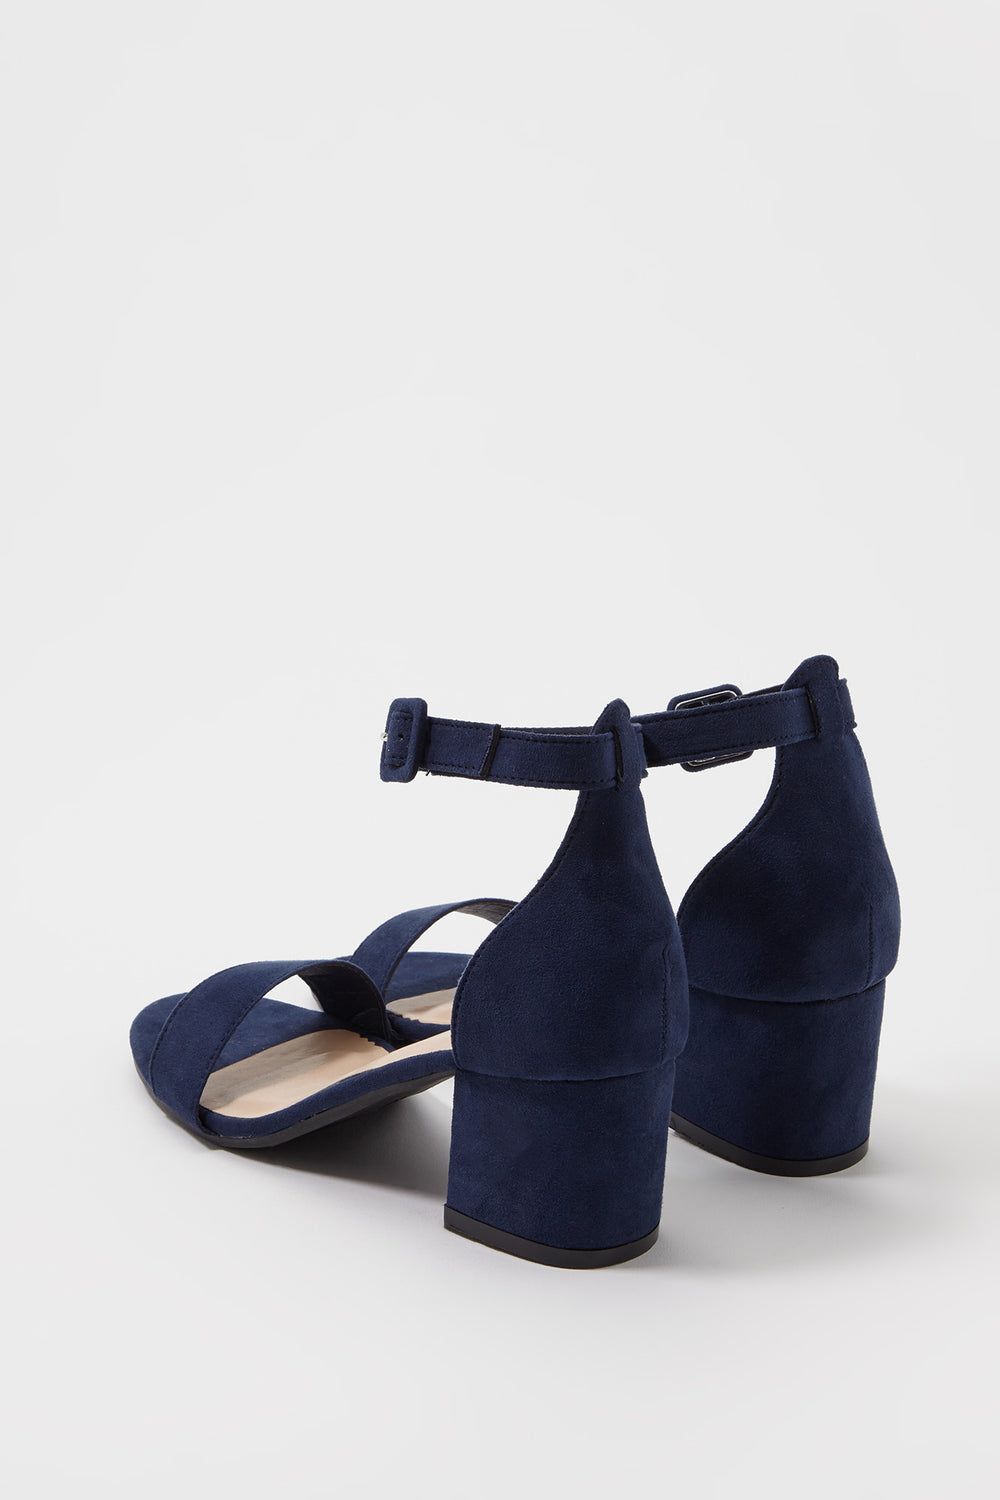 Low Block Heel Sandal Navy